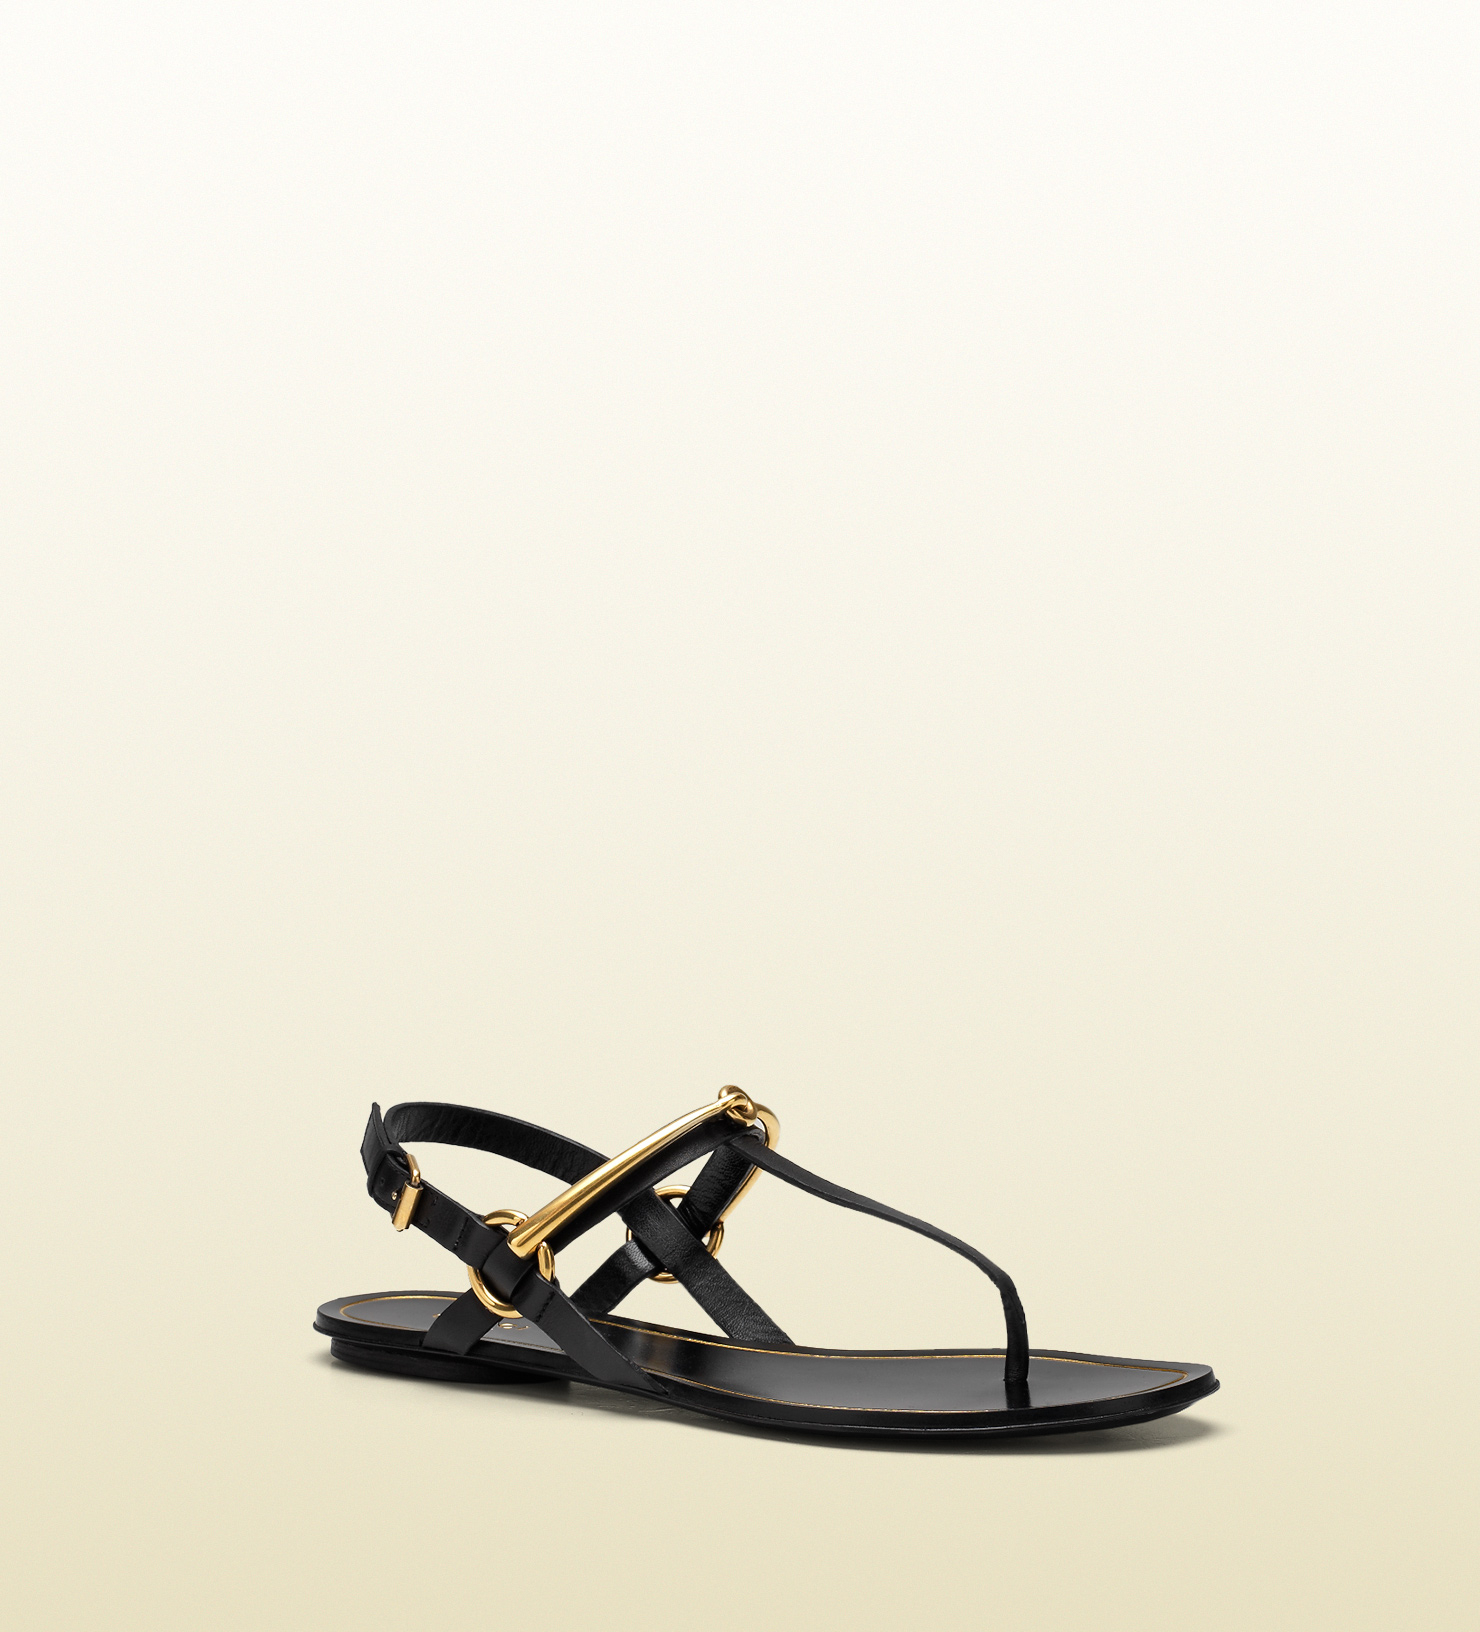 55020aa318ad65 Lyst - Gucci Tess Leather Horsebit Thong Sandal in Black for Men